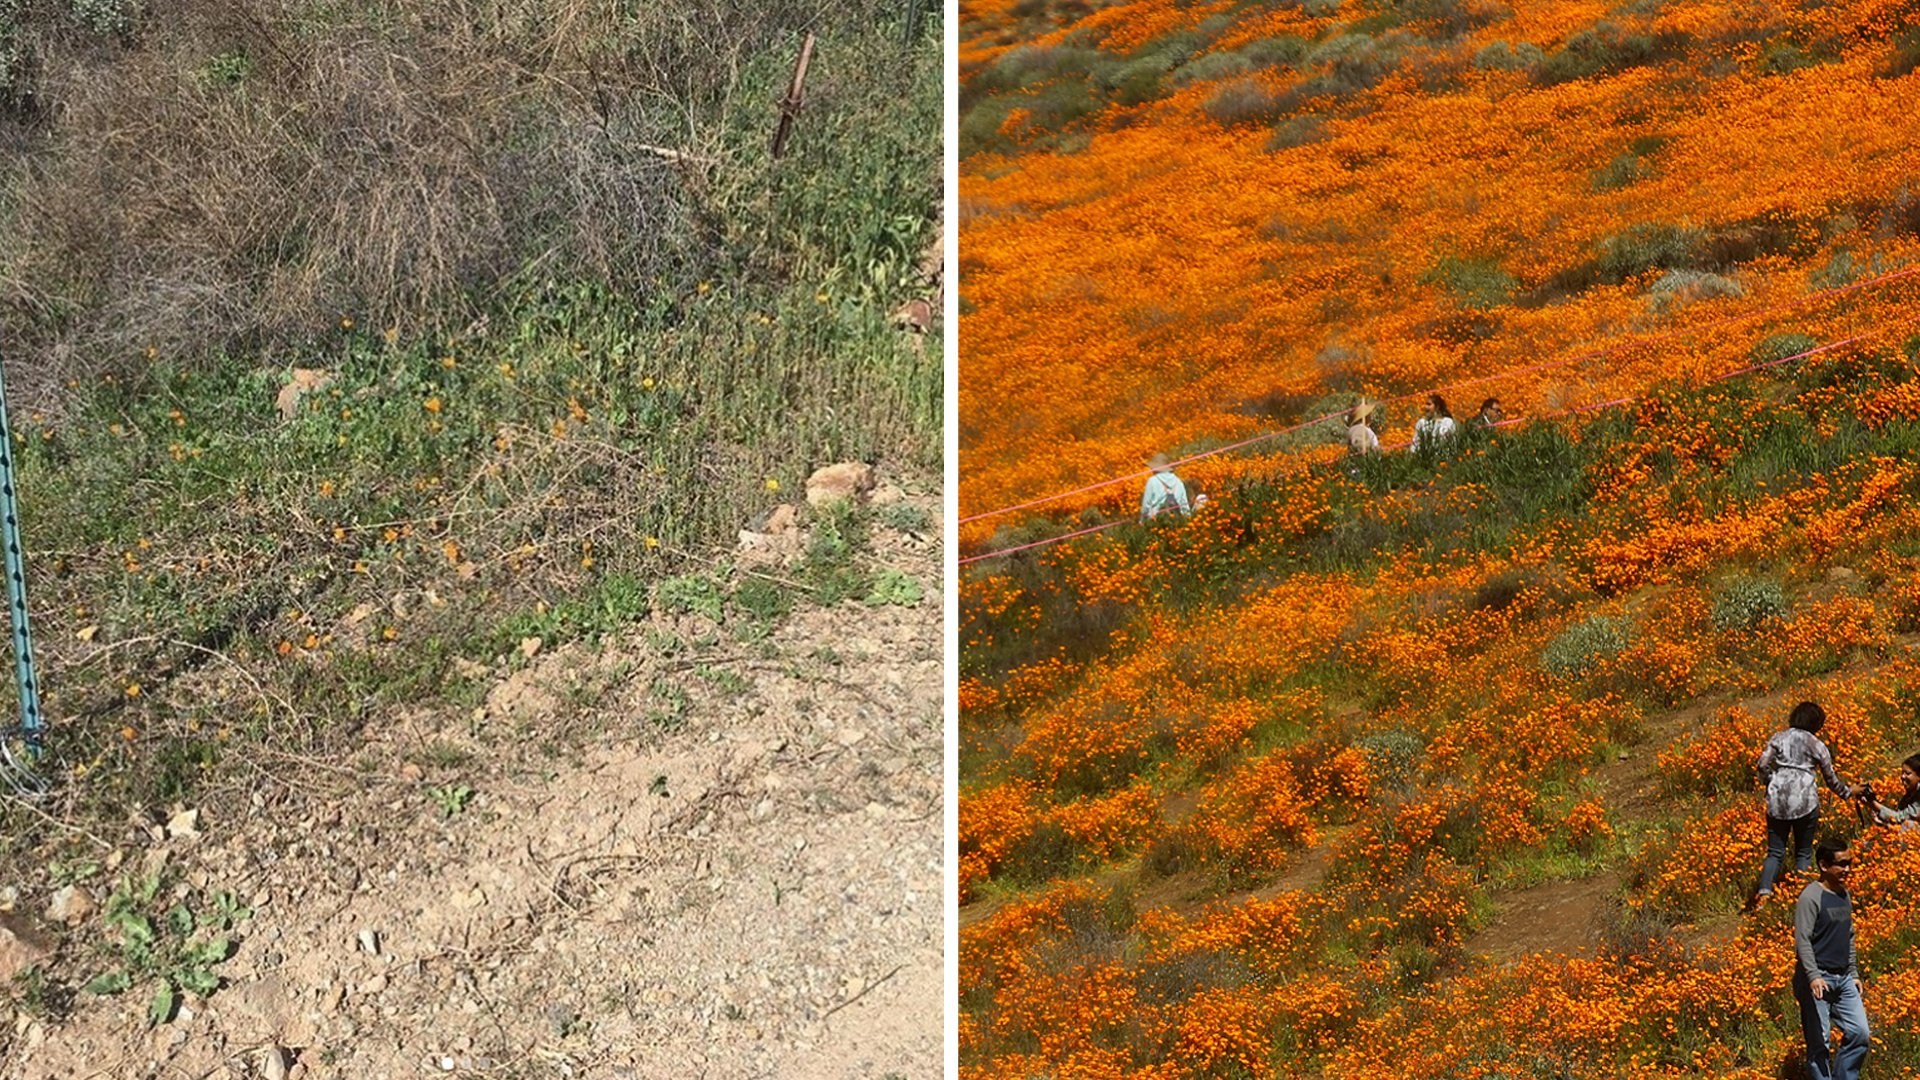 On the left, some poppies are seen in the Walker Canyon area in Feb. 2020, in a photo shared by the City of Lake Elsinore. ⁠On the right, the 'super bloom' of wild poppies blankets the hills of Walker Canyon on March 12, 2019, near Lake Elsinore, California. (Credit: Mario Tama/Getty Images)